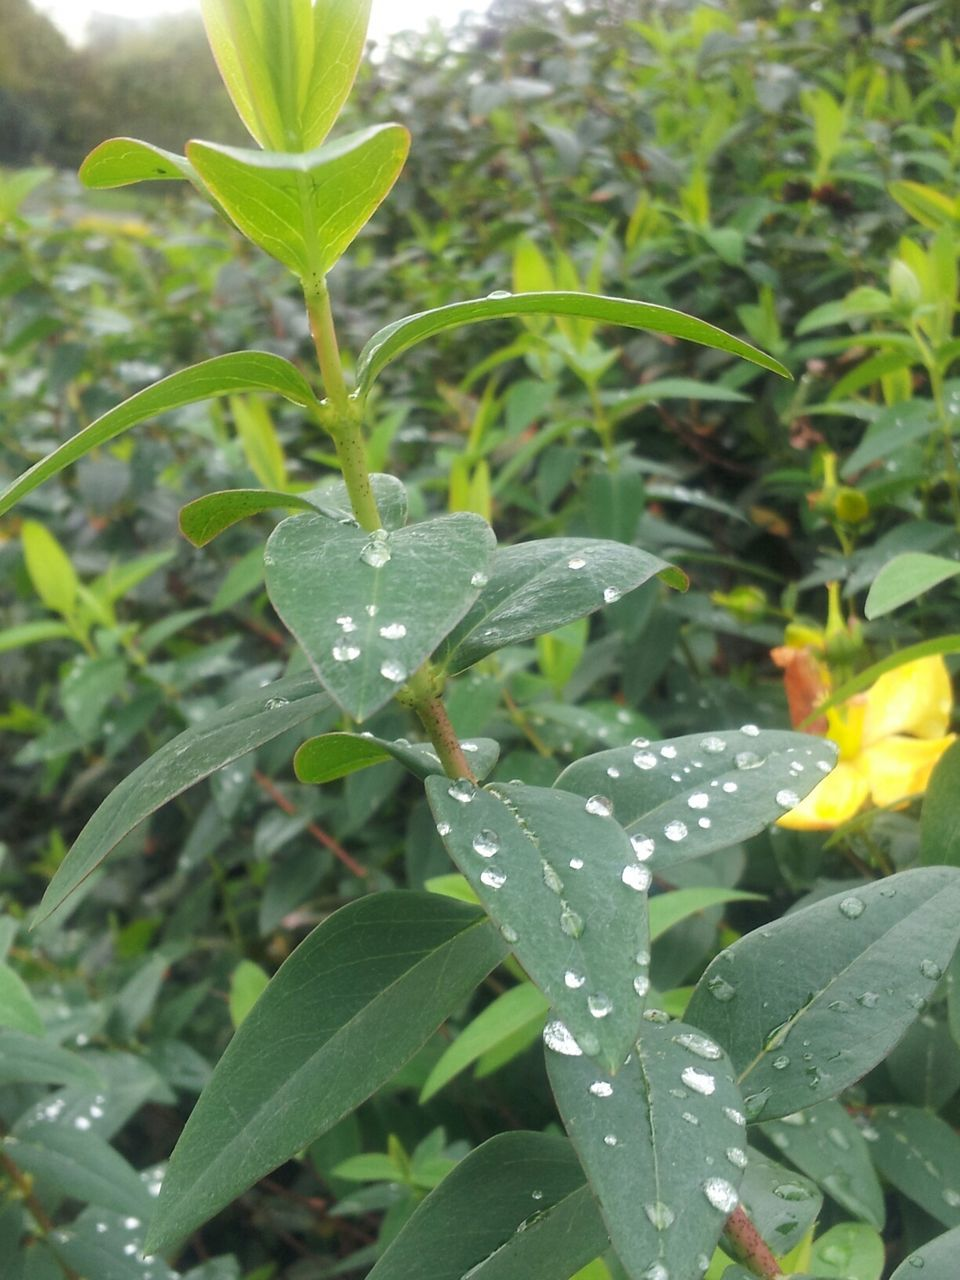 drop, leaf, growth, nature, freshness, water, wet, plant, green color, beauty in nature, fragility, day, raindrop, close-up, no people, outdoors, purity, flower, flower head, animal themes